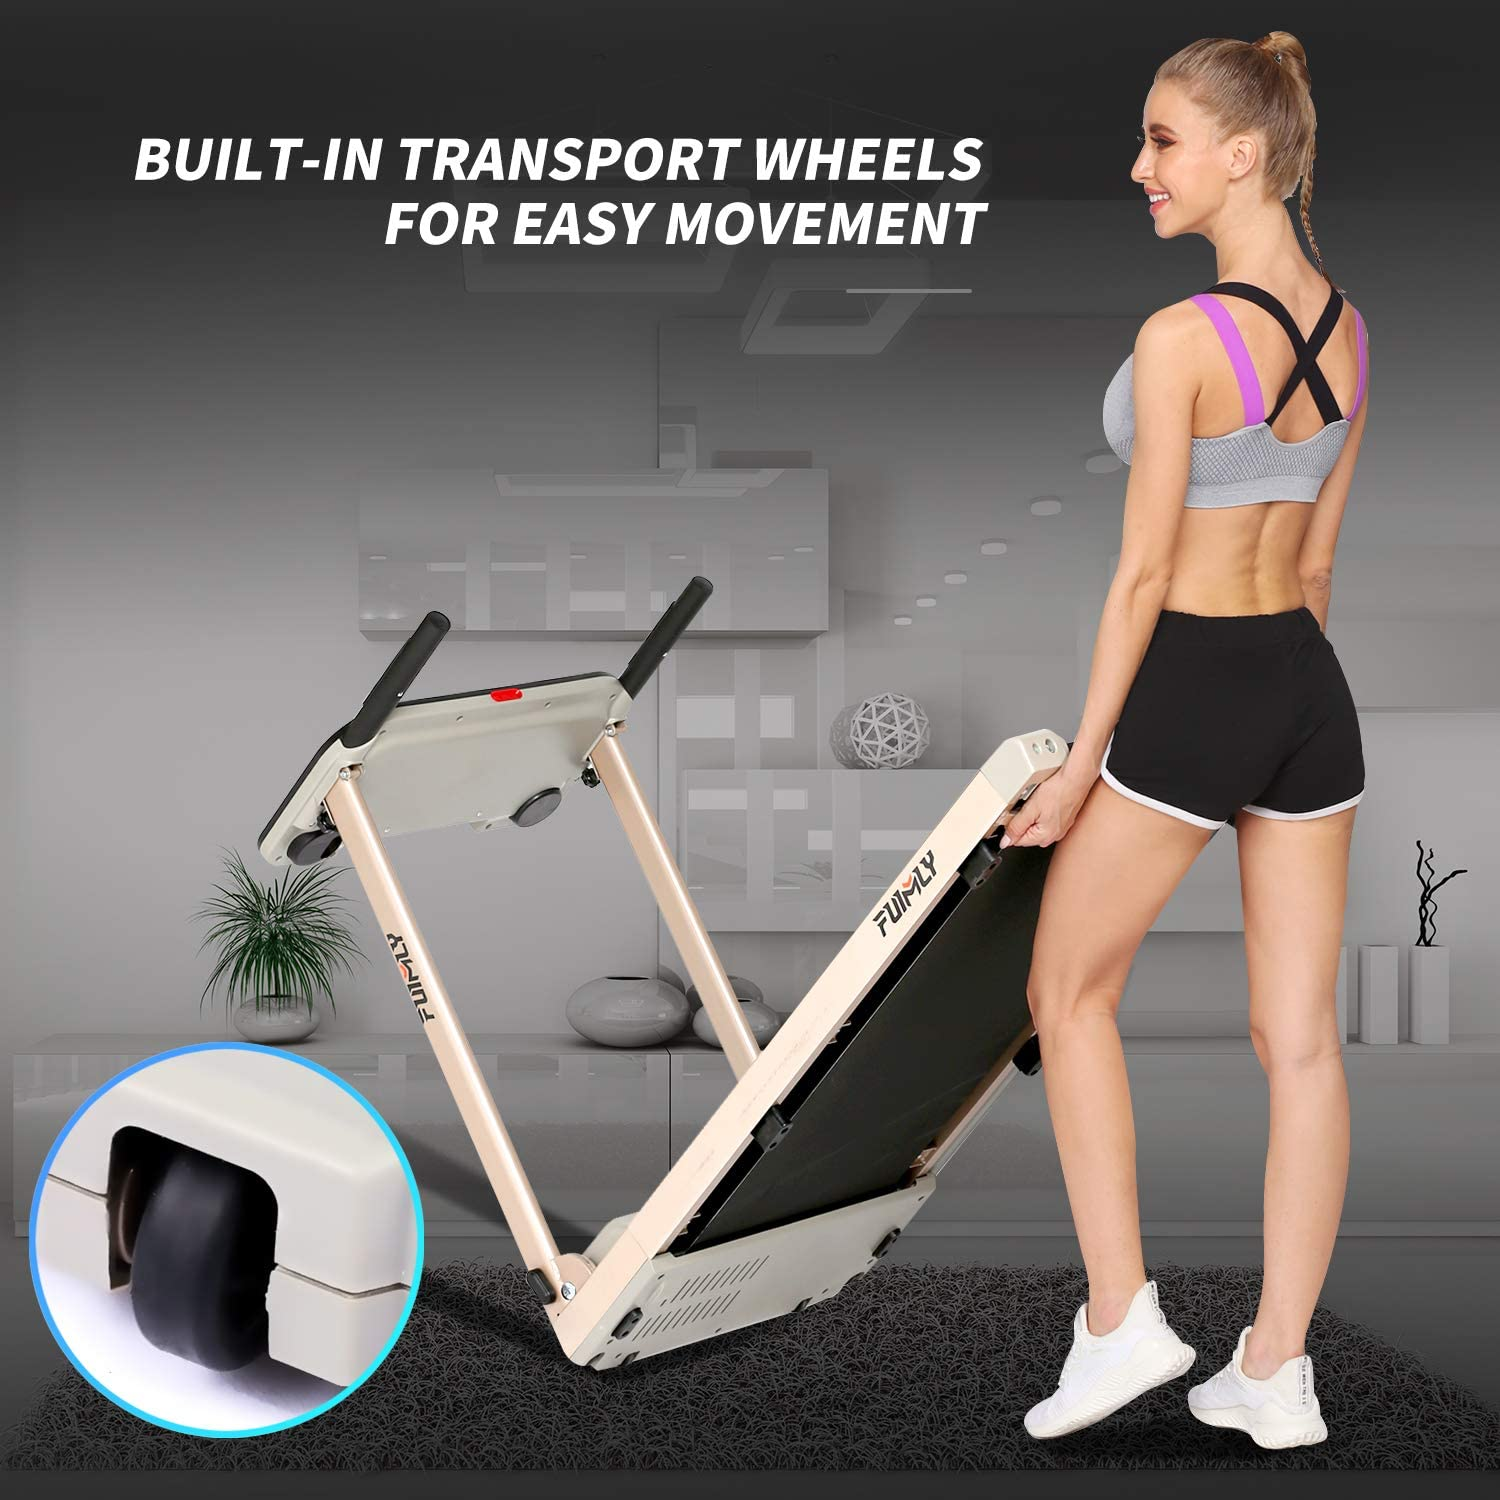 Heavy Duty Steel Frame Treadmills with Large Desk,//Best 2.25HP Exercise Jogging Walking Running Machine for Home Gym Office Workout FUNMILY Folding Electric Treadmill,/12 preset Programs